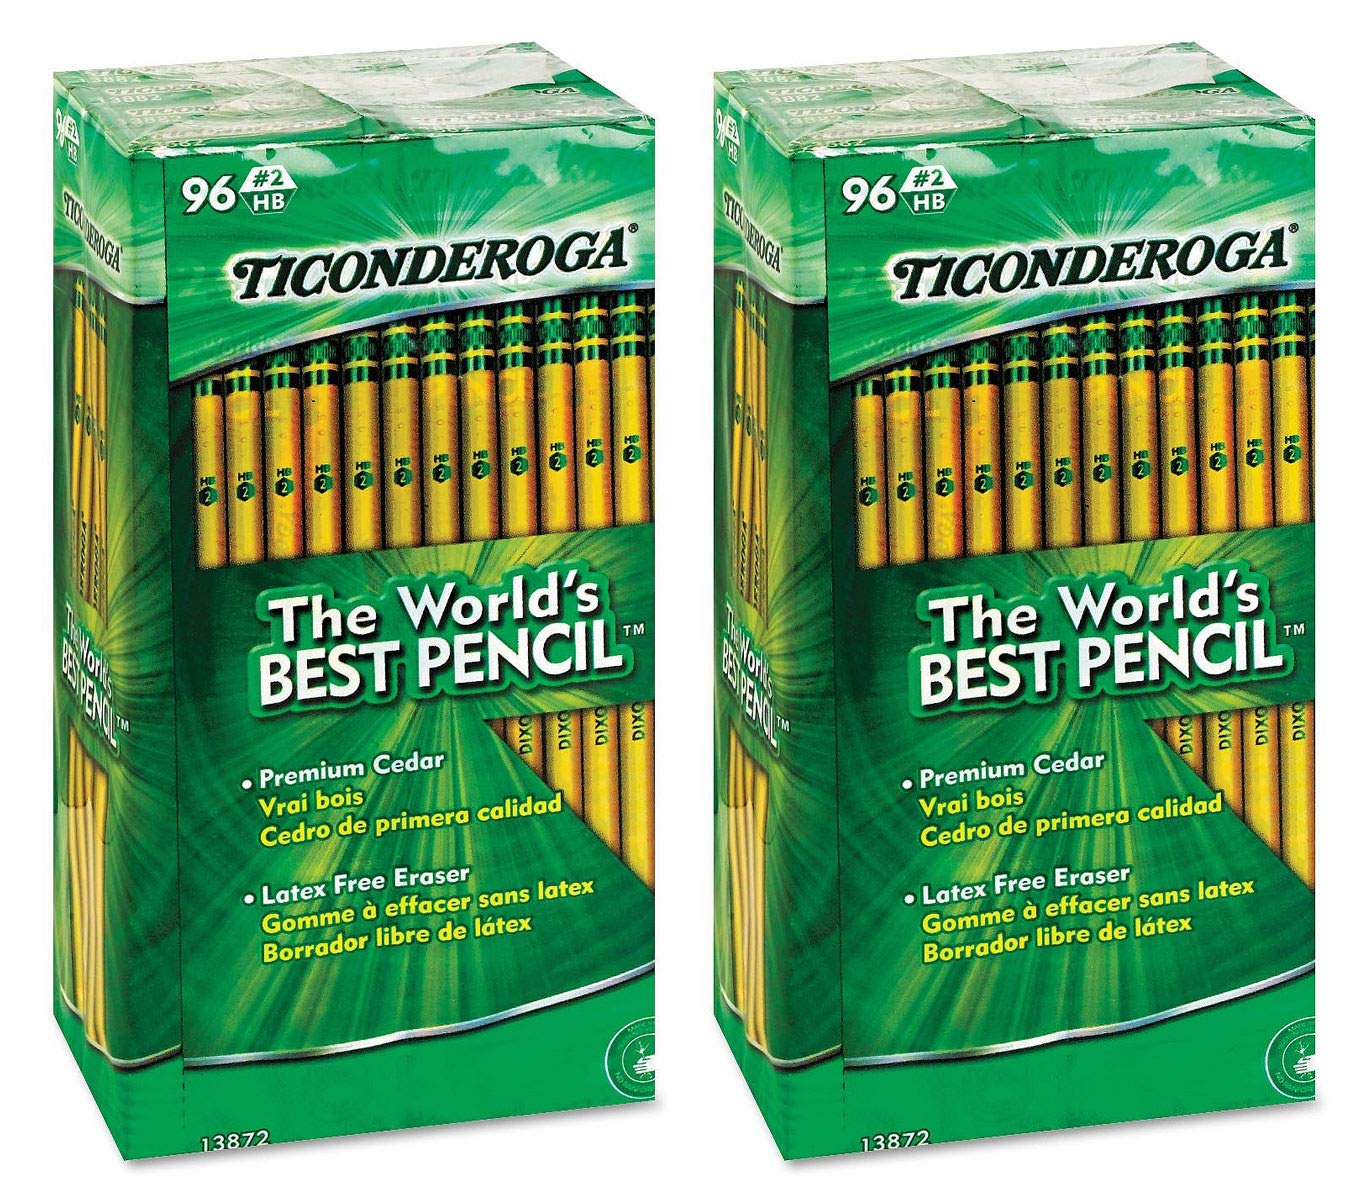 Ticonderoga Woodcase Pencil, HB #2, Yellow Barrel, 96/Pack